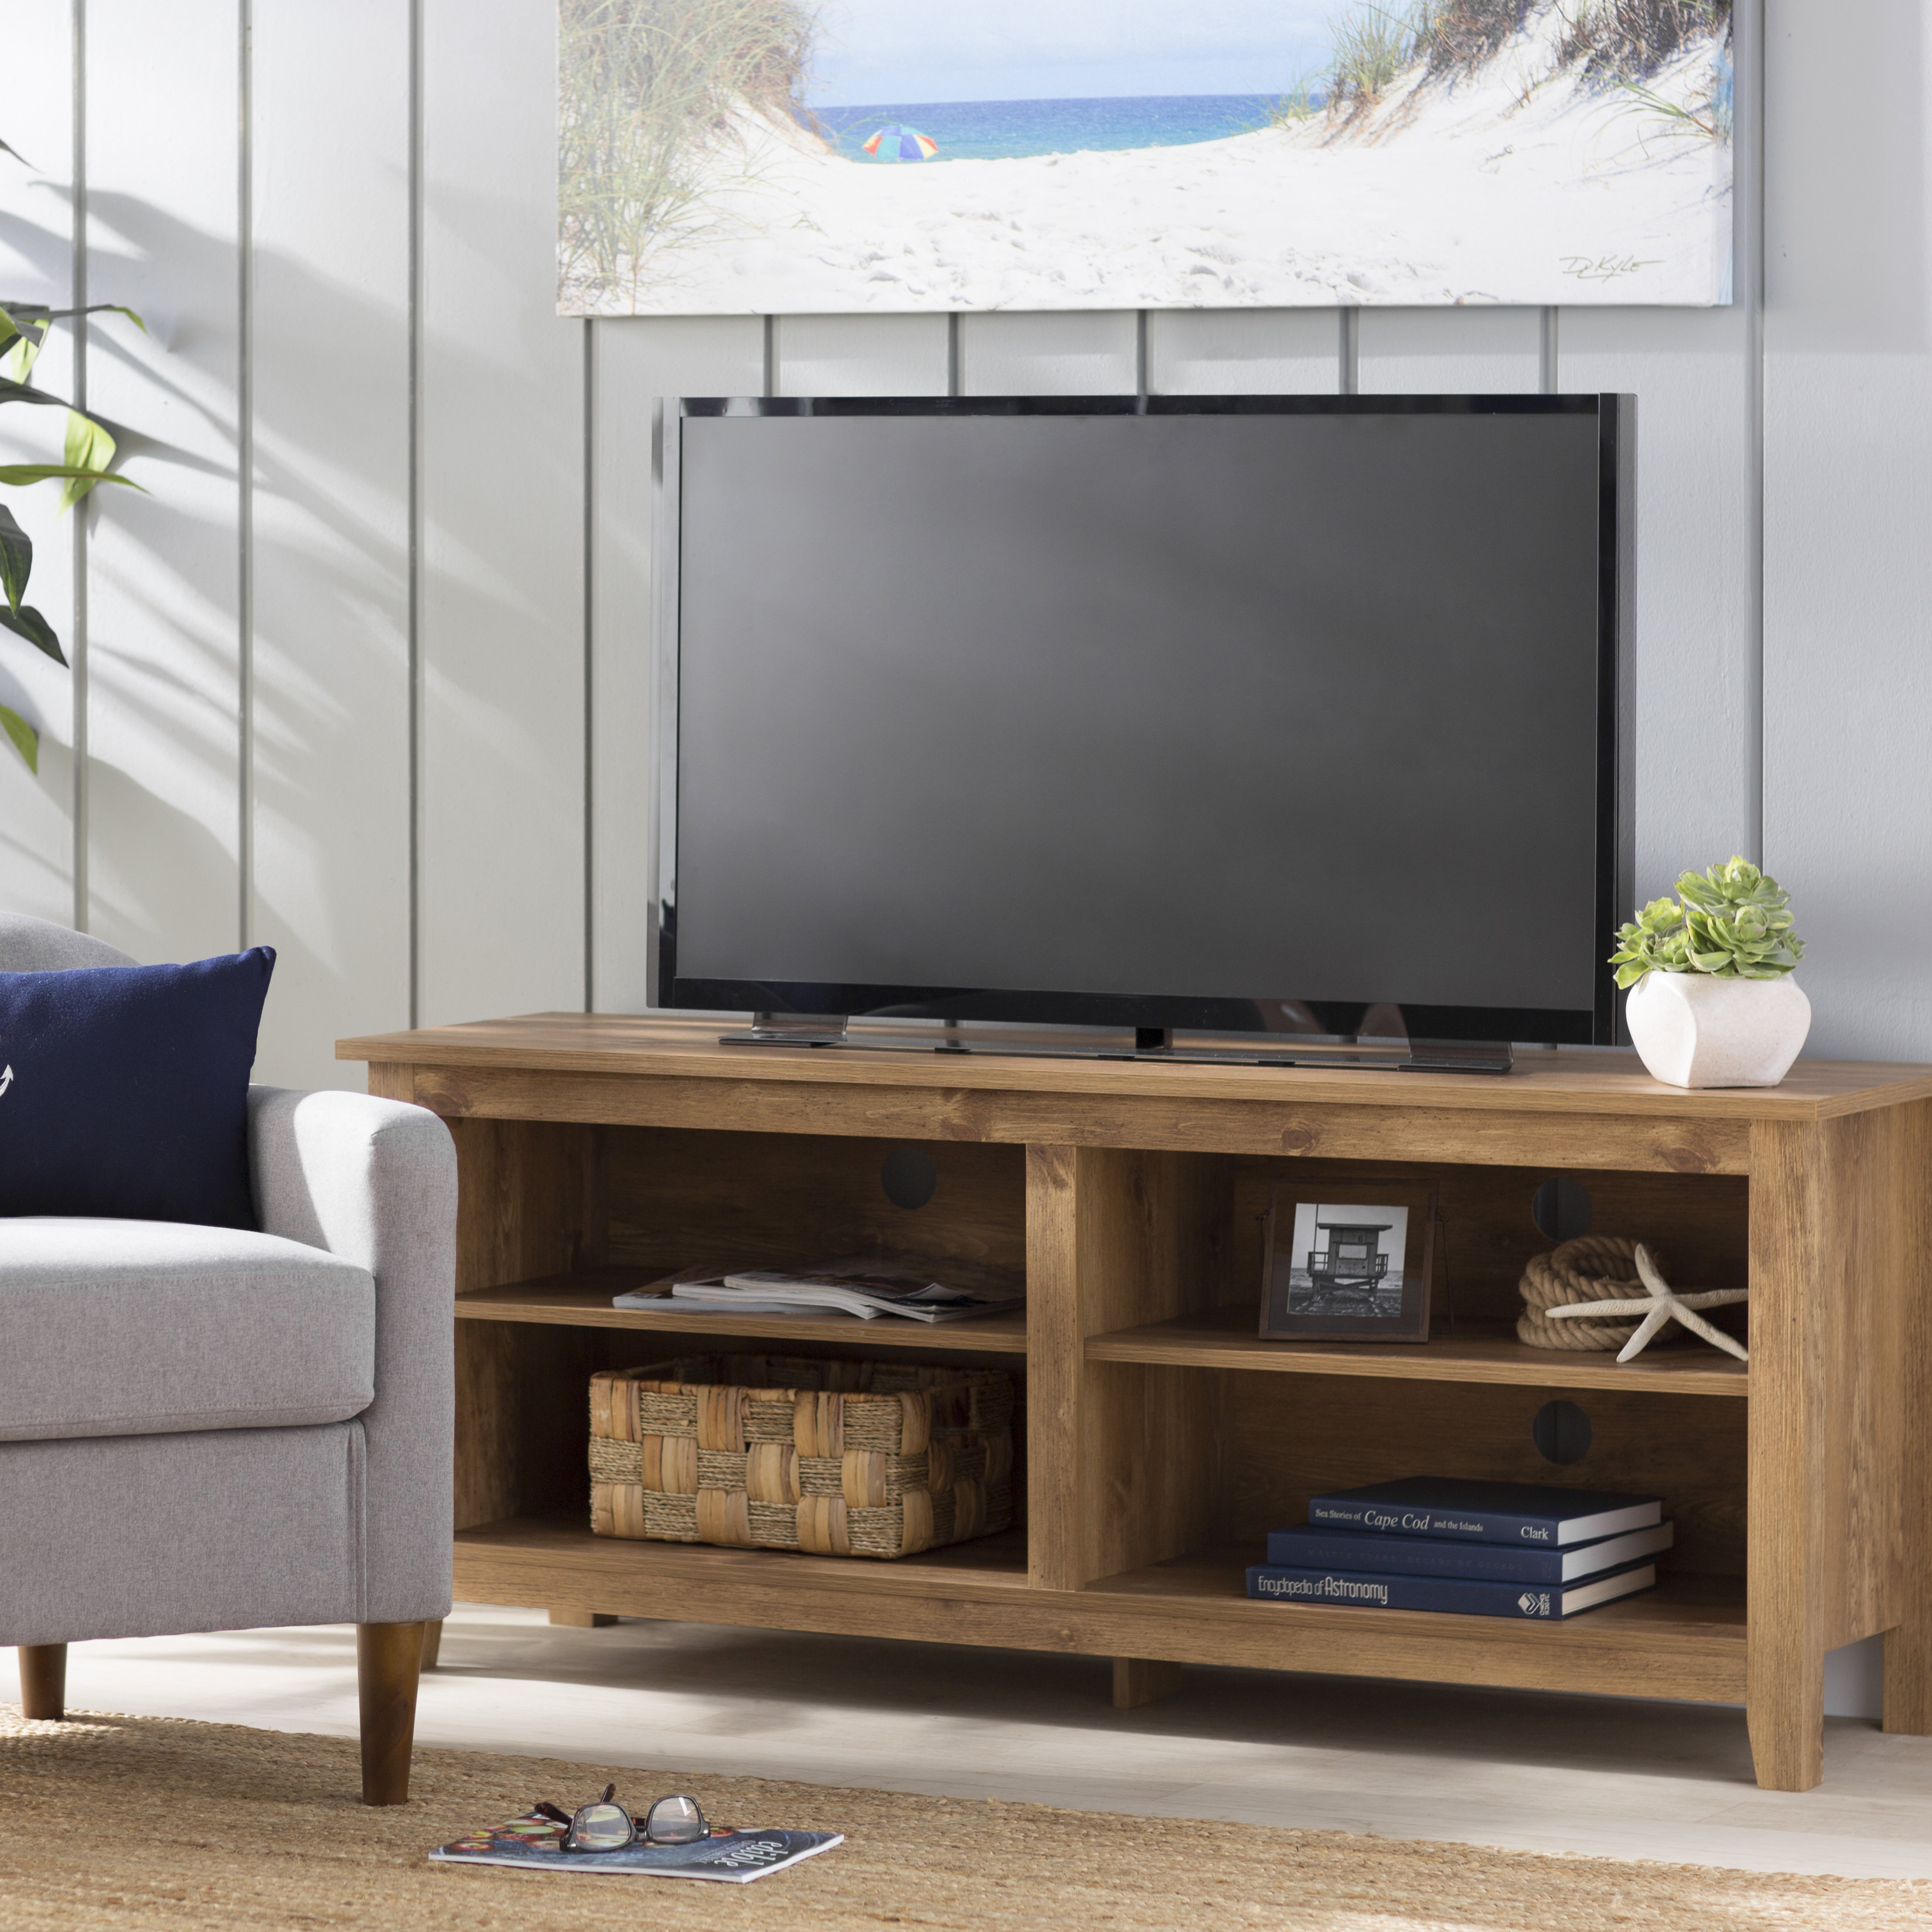 90 Inch Tv Stand | Wayfair Pertaining To Century White 60 Inch Tv Stands (View 17 of 30)